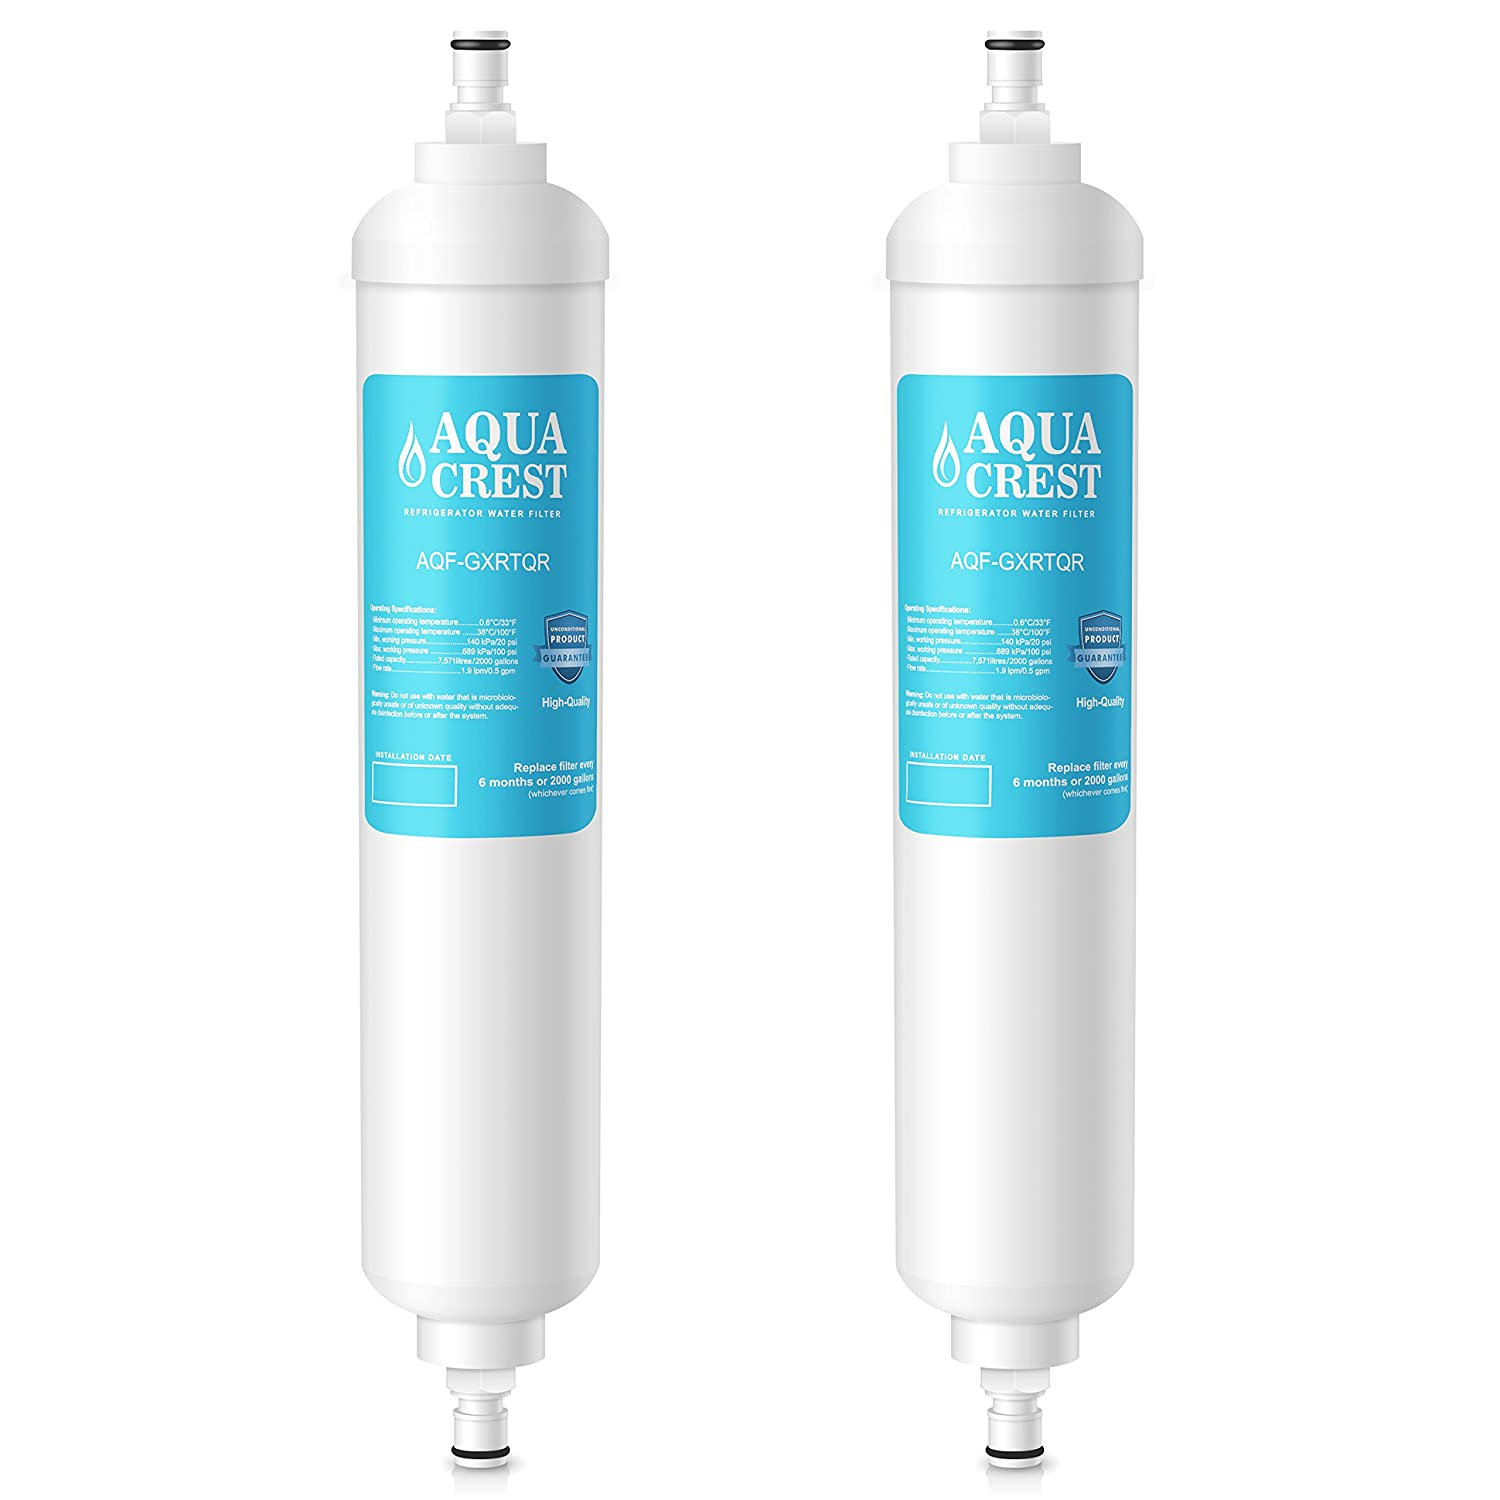 AQUACREST Replacement GXRTQR Refrigerator Water Filter, Compatible with GE GXRTQR GXRTQ System (Pack of 2)